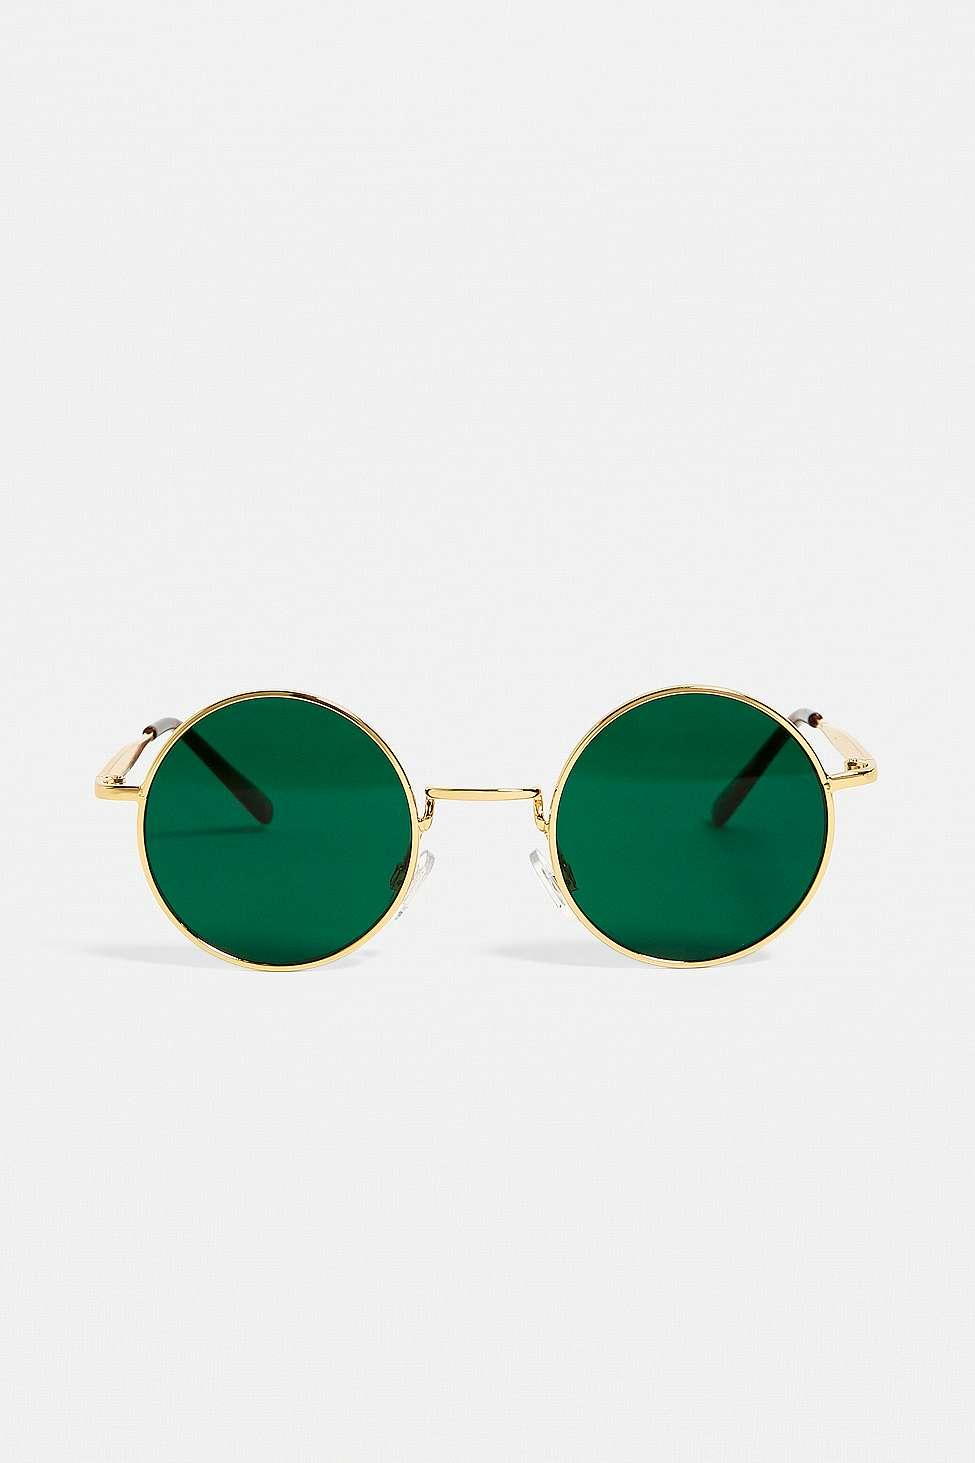 4ea006f5034 Urban Outfitters Uo Jude Green Sunglasses in Green for Men - Lyst